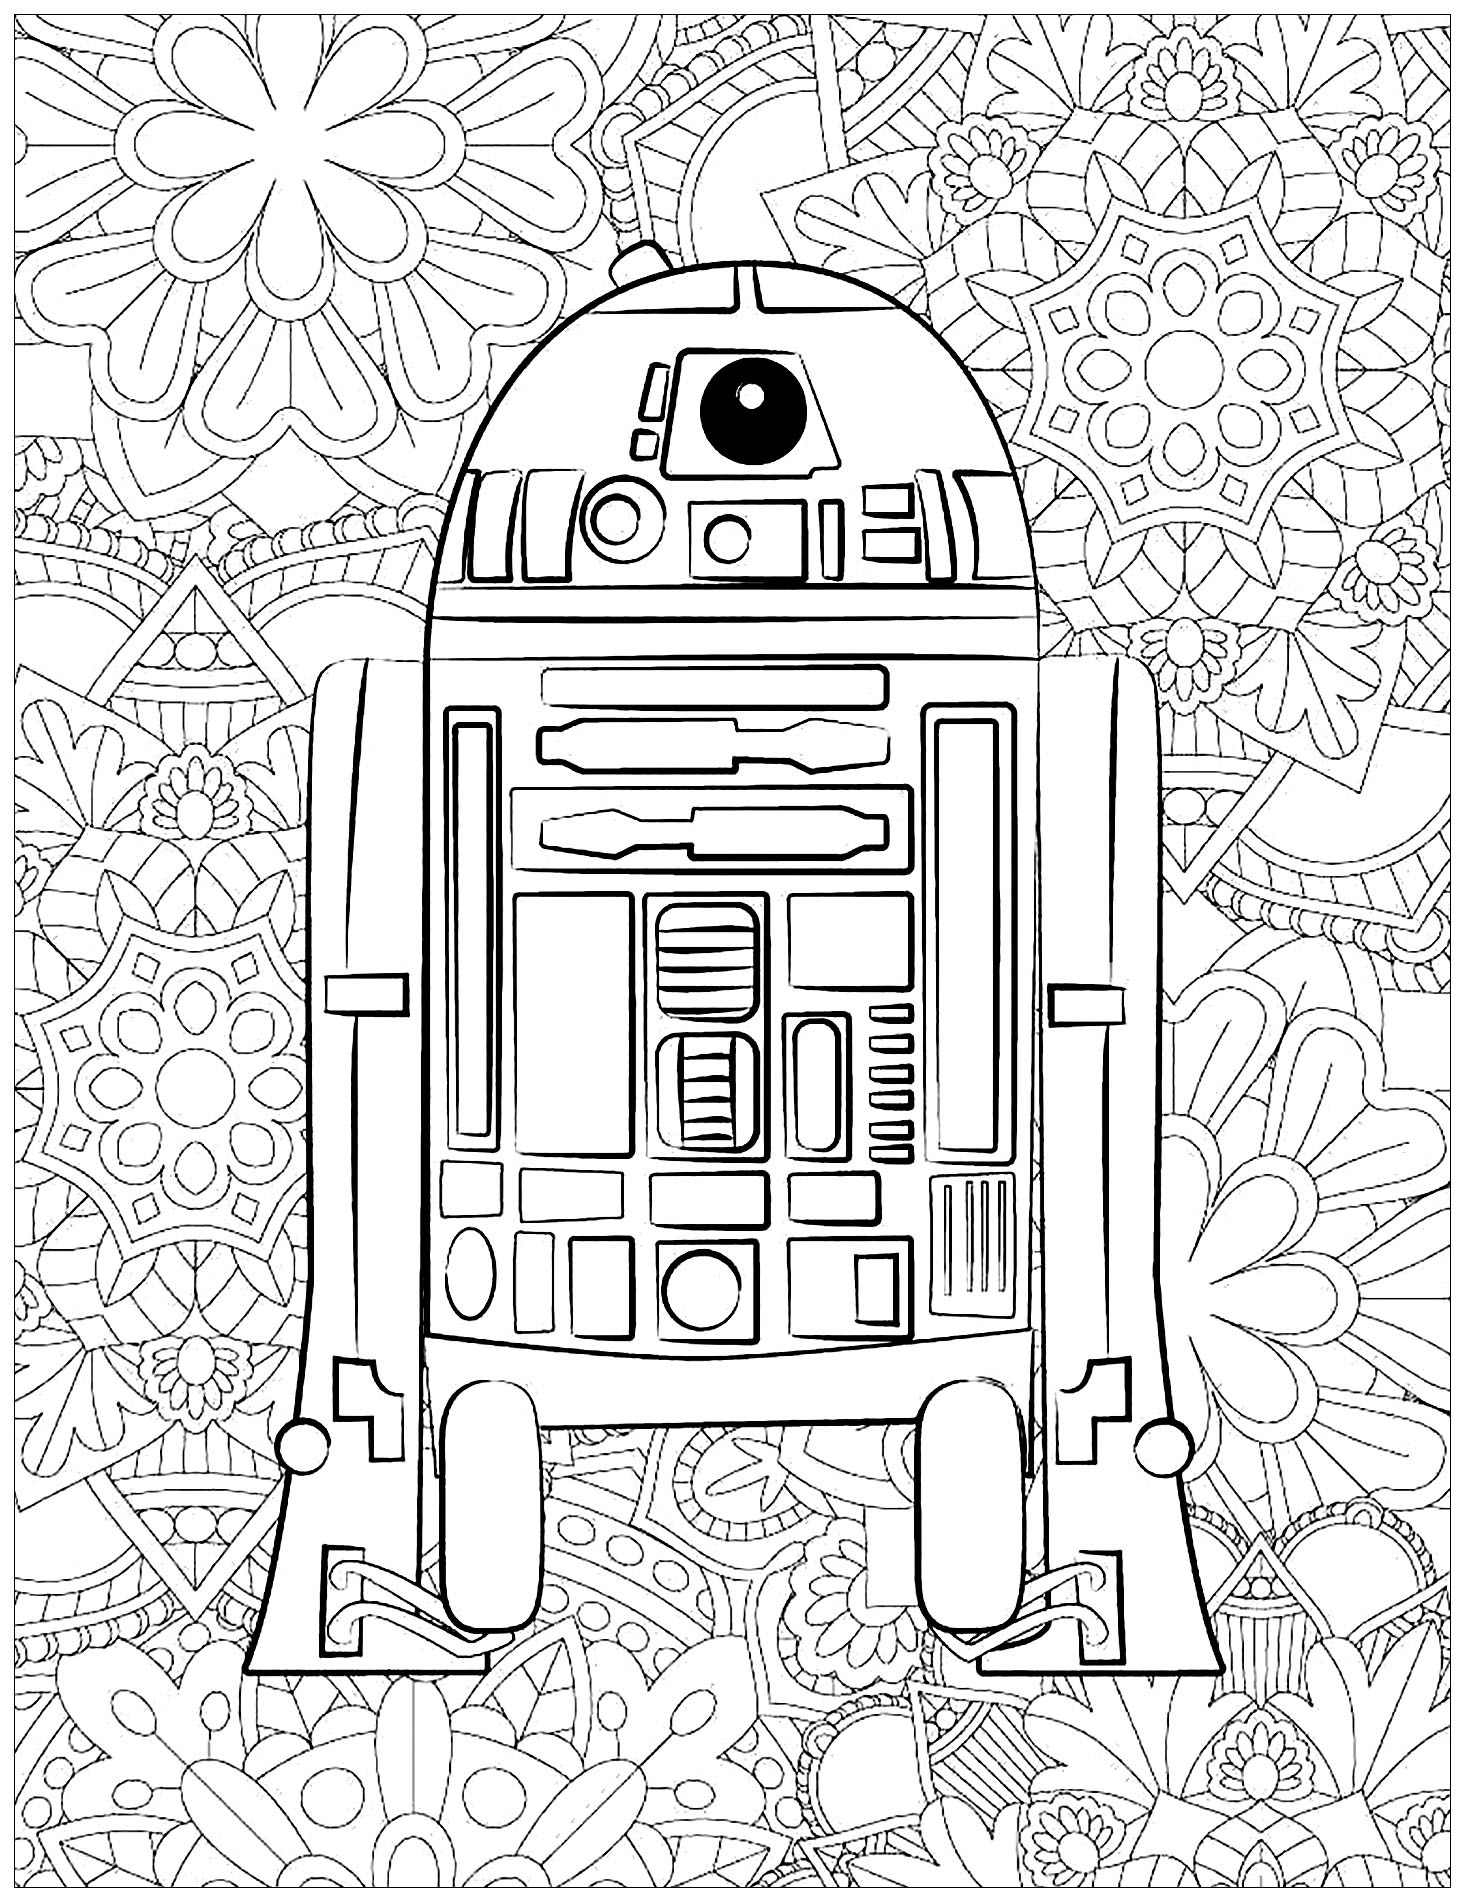 star wars pictures to color famous star wars coloring darth vader cartoon coloring pictures wars color to star